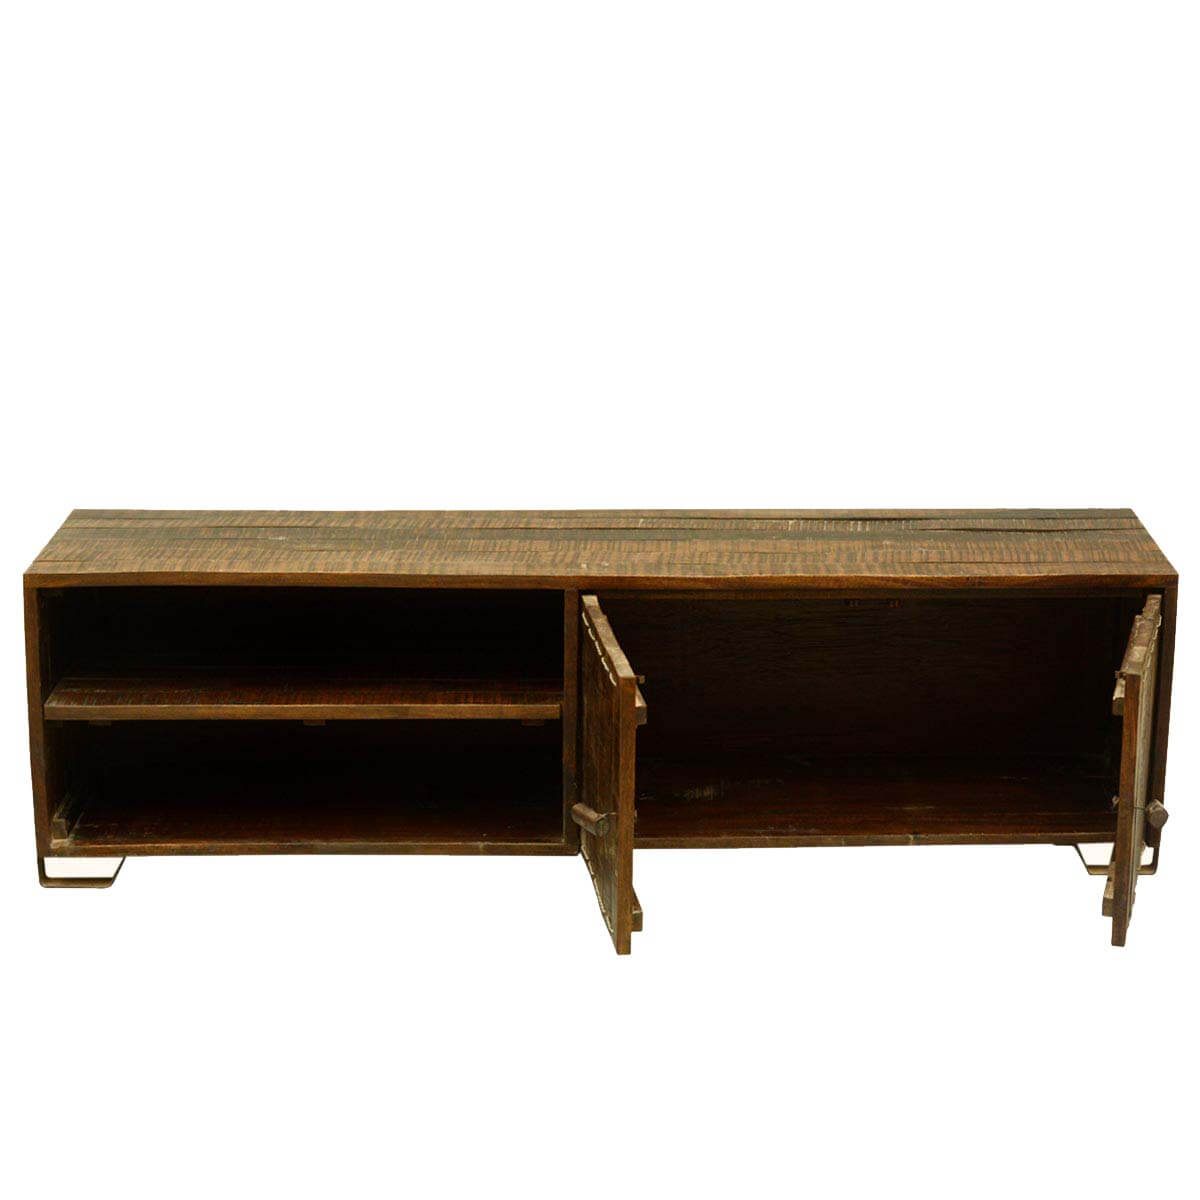 Modern Scholar Rustic Reclaimed Wood Entertainment Console